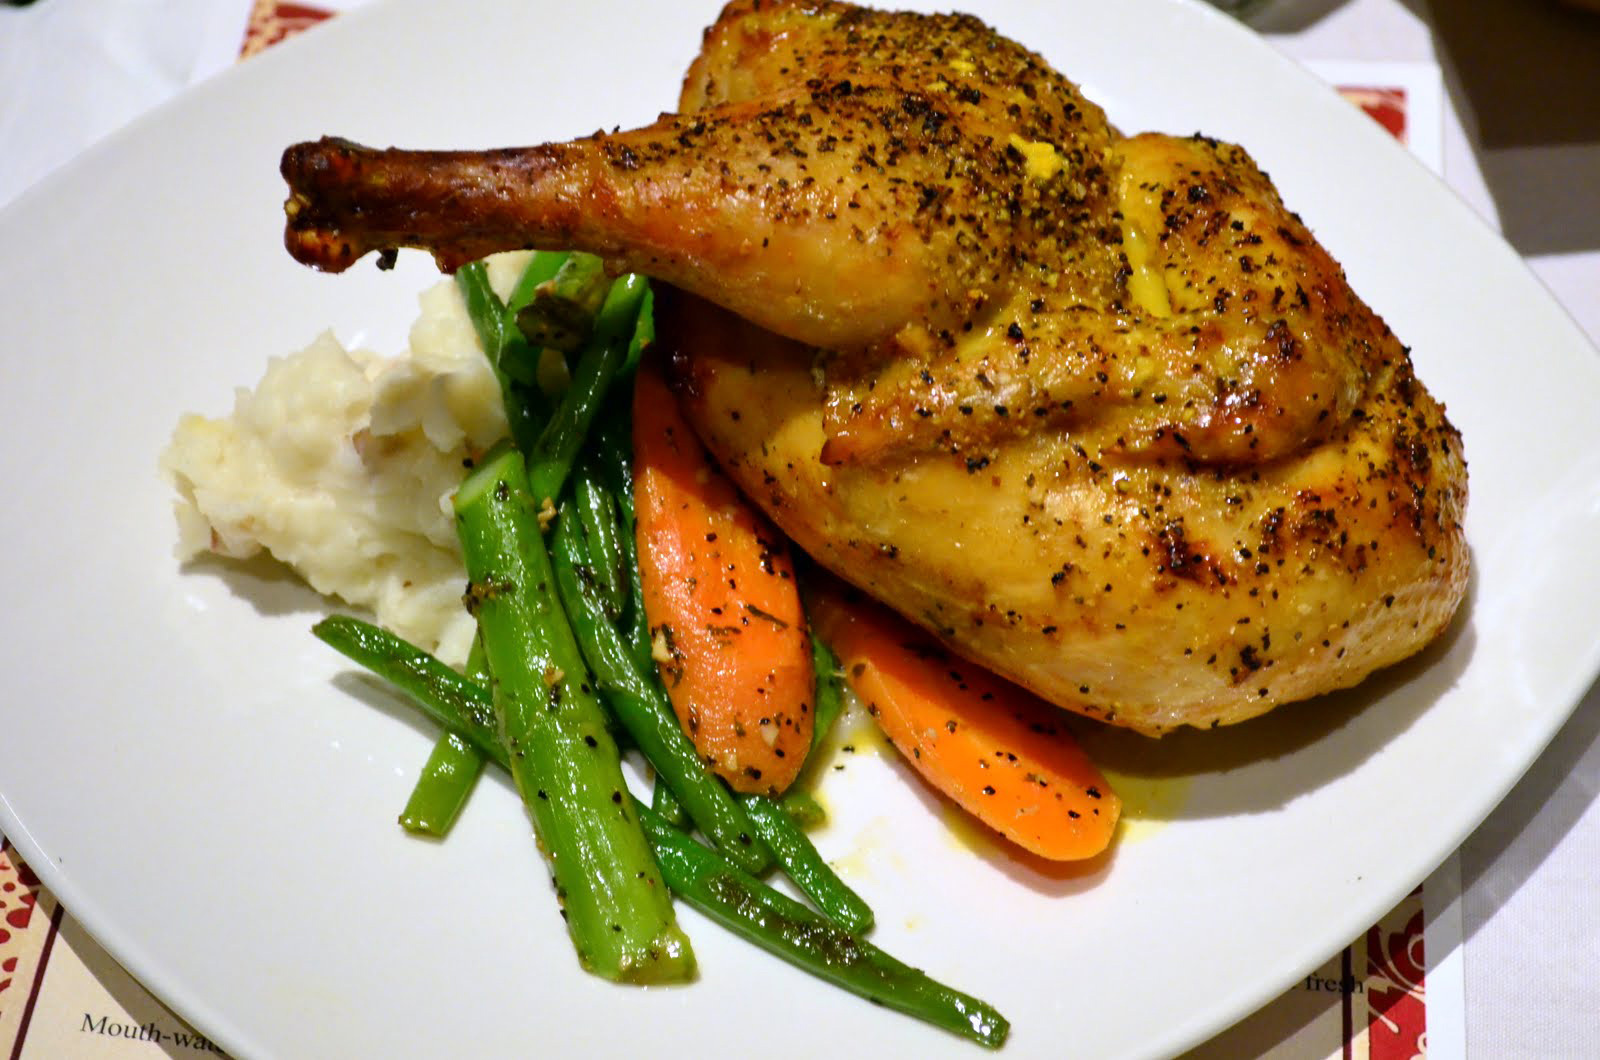 Half chicken with Yukon potatoes and seasonal vegetables